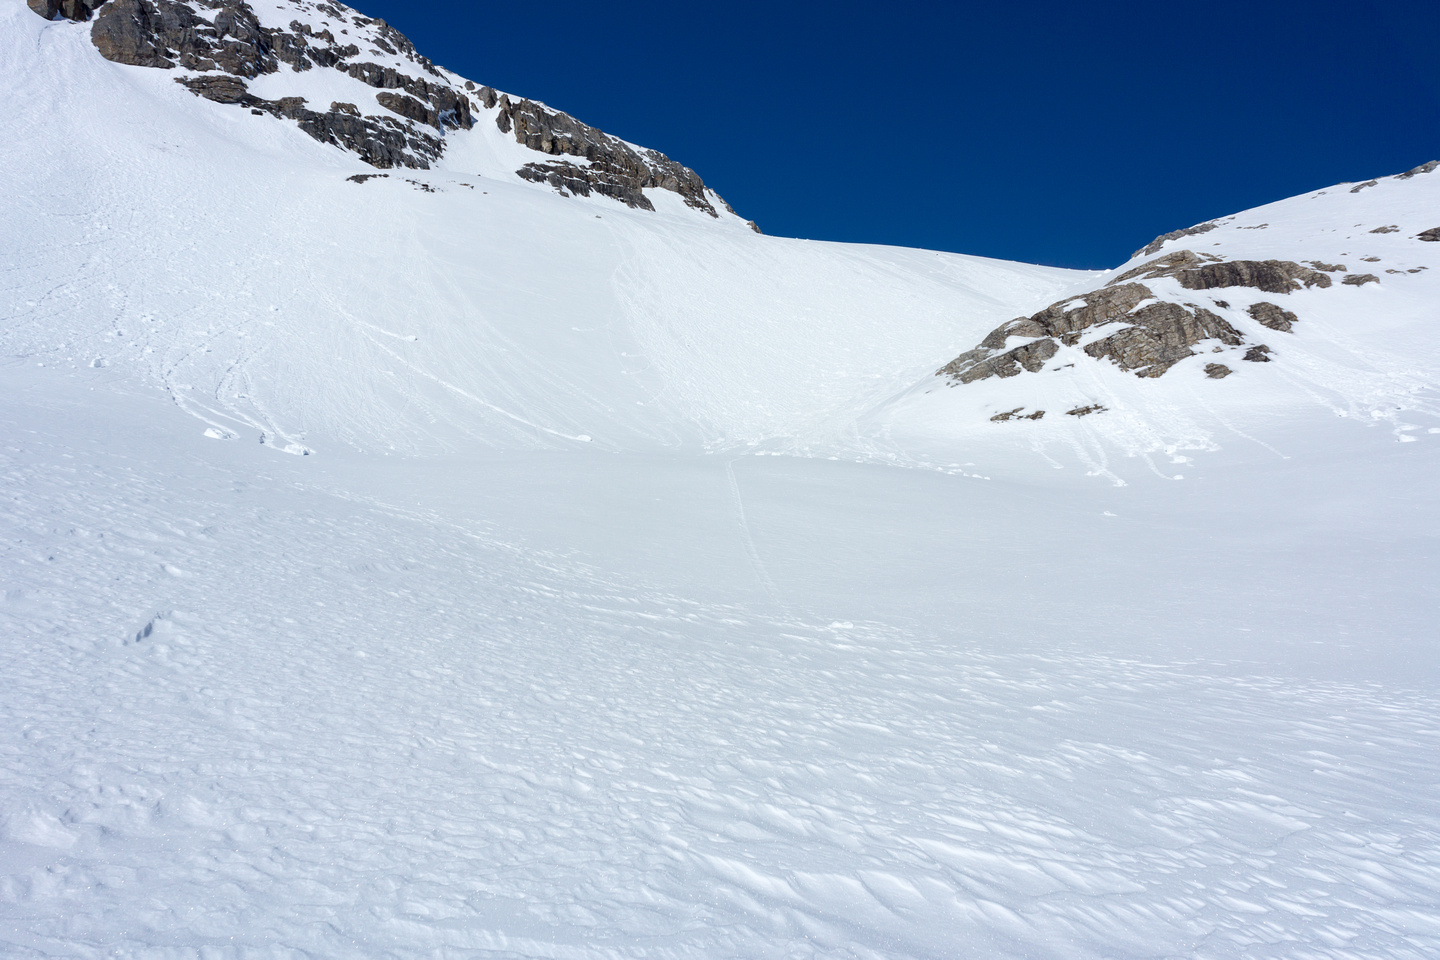 The slopes above our lunch spot are obviously avalanche terrain.